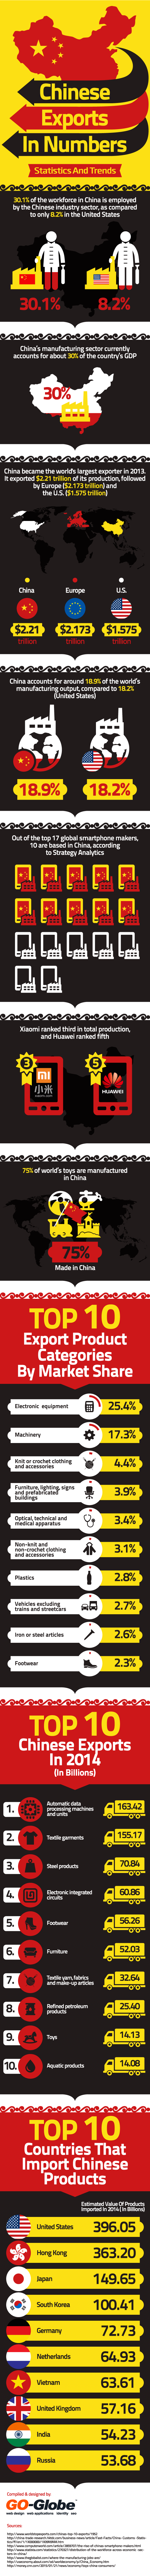 Chinese exports infographic in numbers